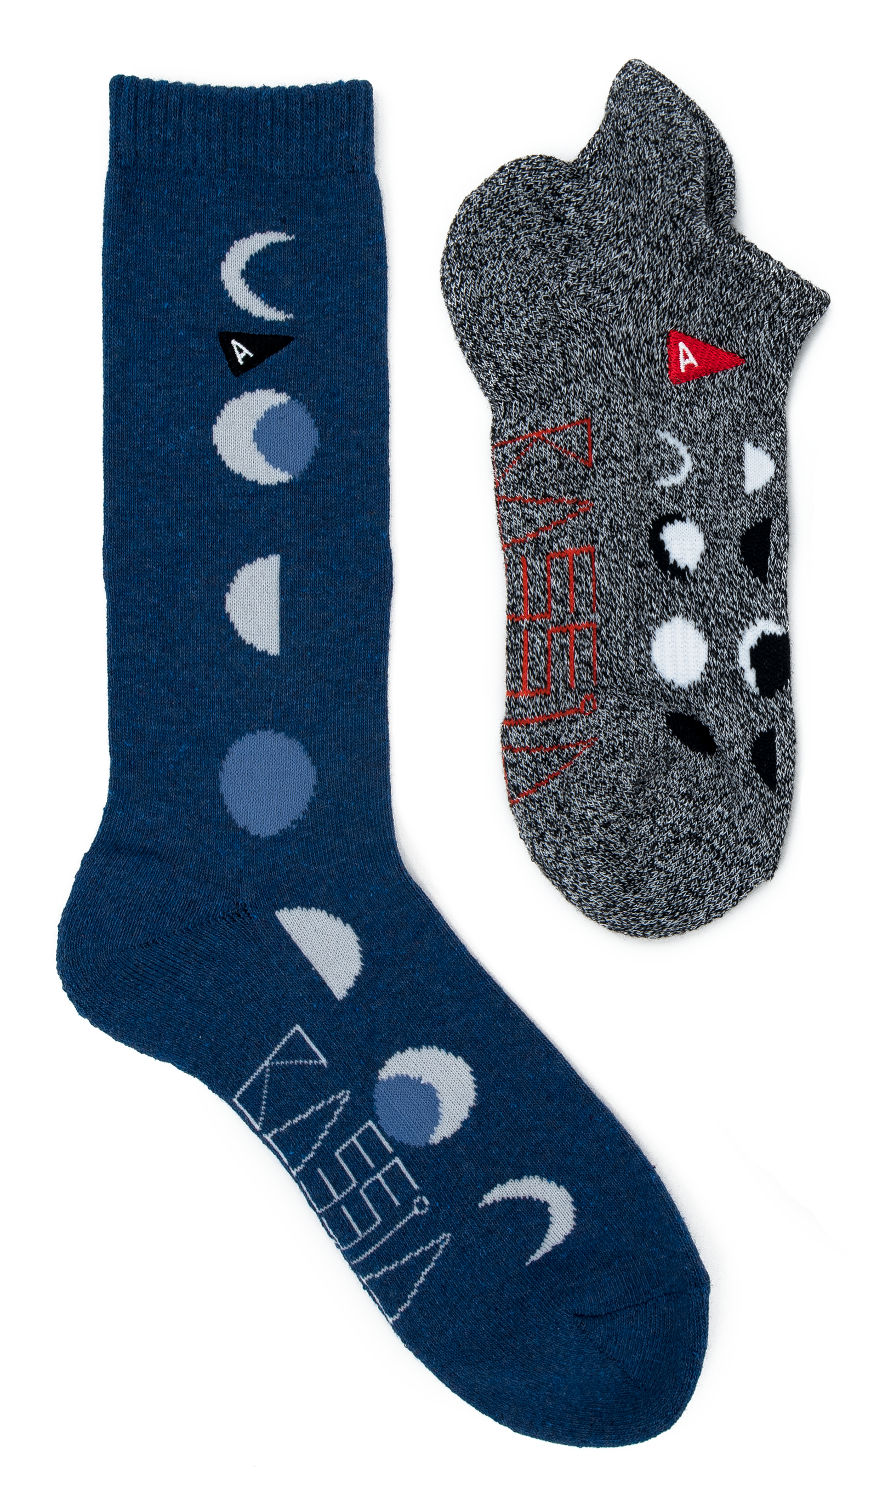 Blue moon phase long sock and grey moon phase bootie sock